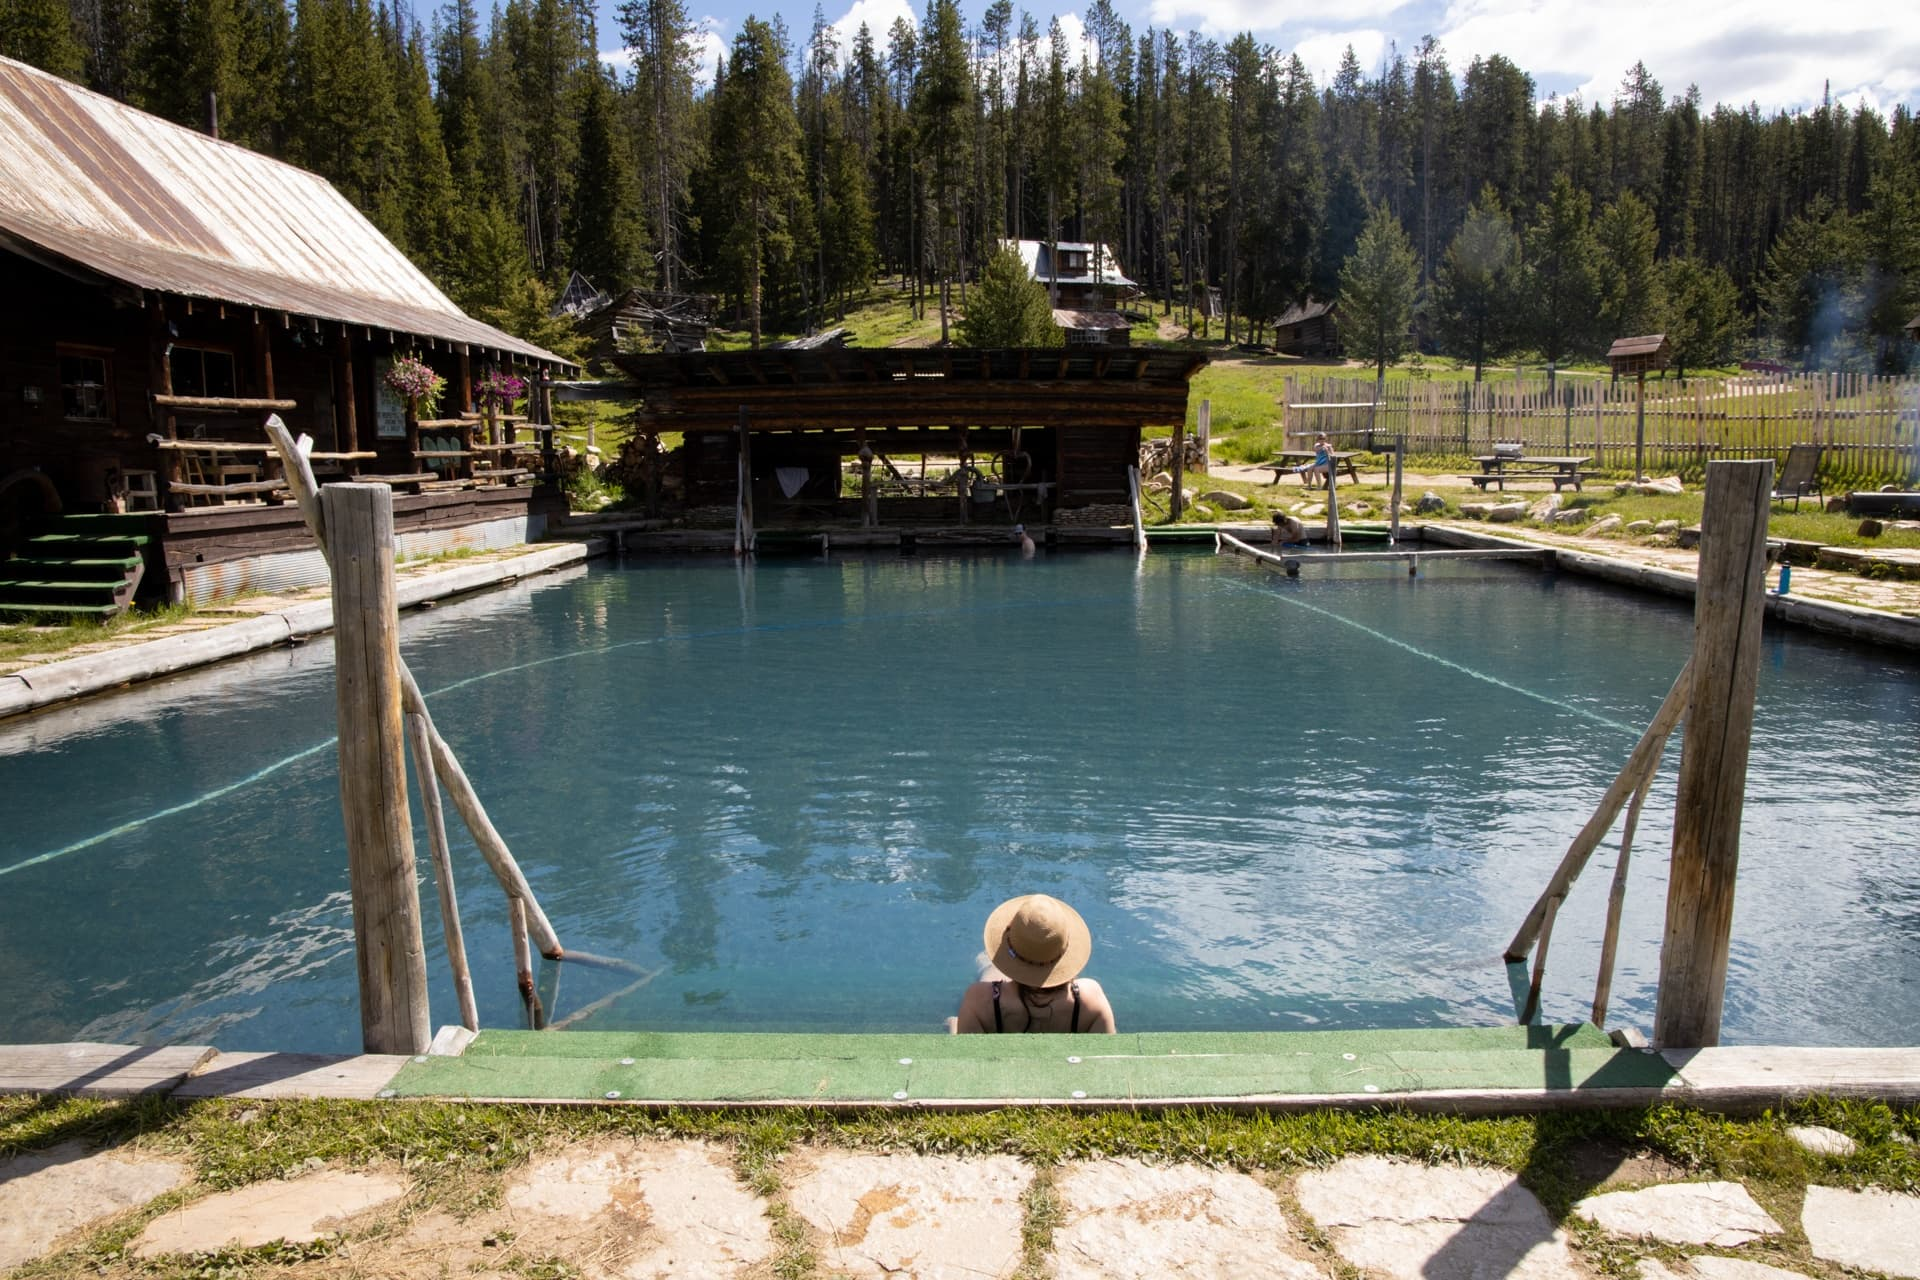 Burgdorf Hot Springs in McCall, Idaho // An outdoor enthusiast's guide to the best hiking, hot springs, biking, rafting, and more summer outdoor activities while visiting McCall, Idaho.